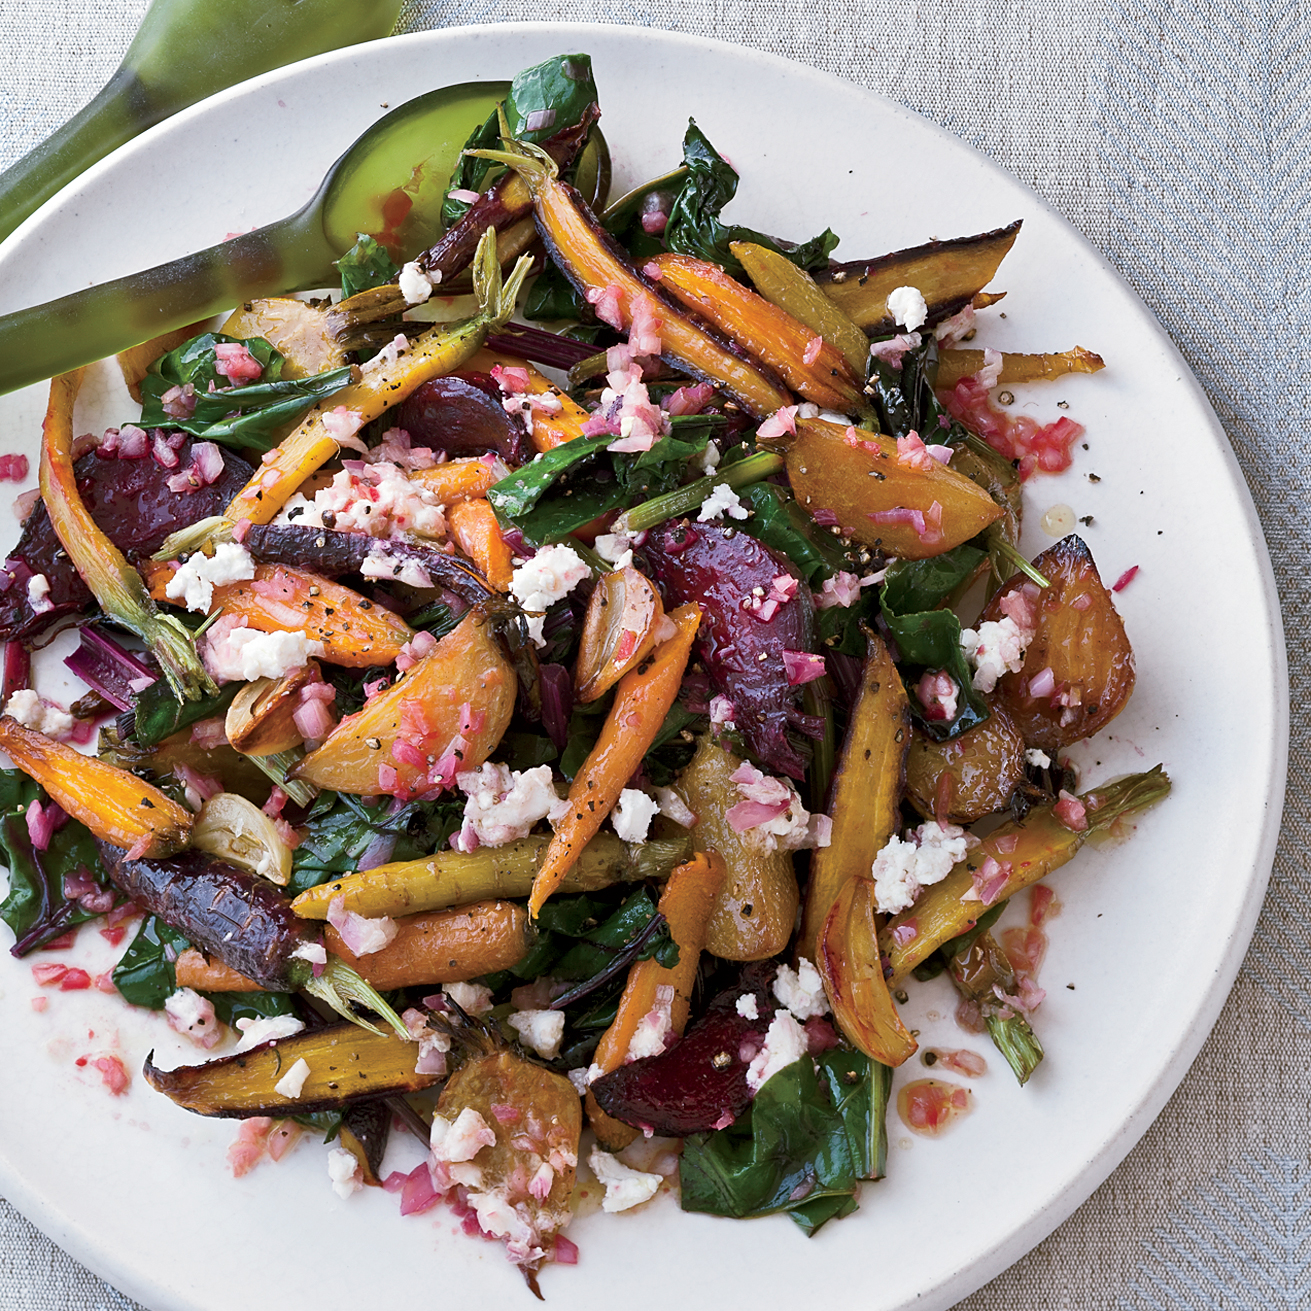 201111-r-roasted-beets-and-carrots-with-goat-cheese-dressing.jpg